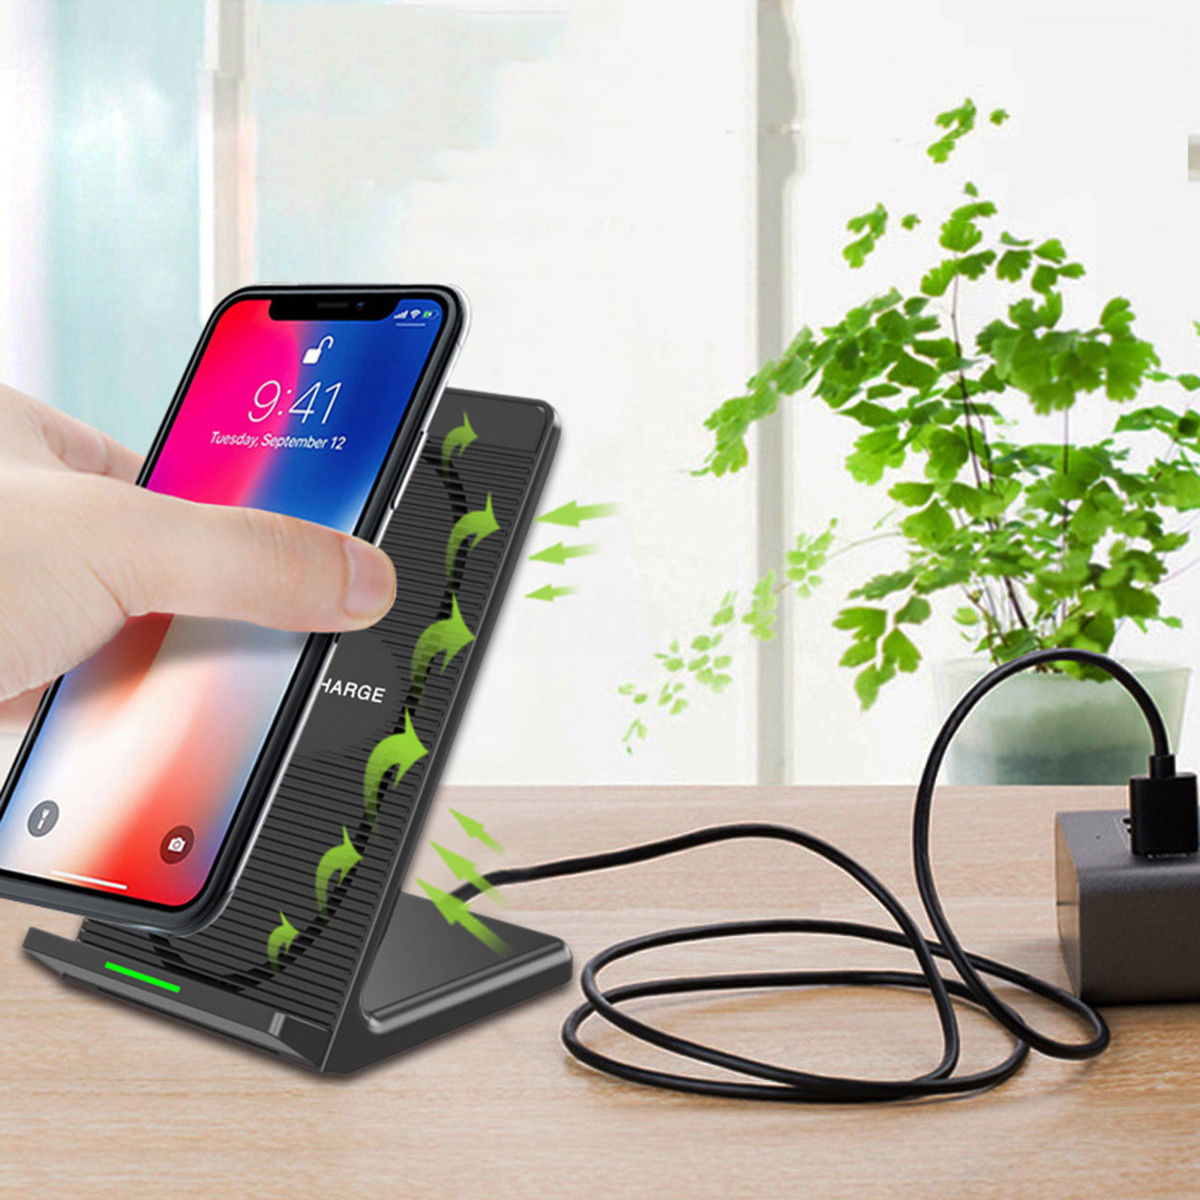 Qi Wireless Charger Charging Stand Dock For Iphone Samsung Cooling Universal Receiver Reveres Port Smartphone Fan